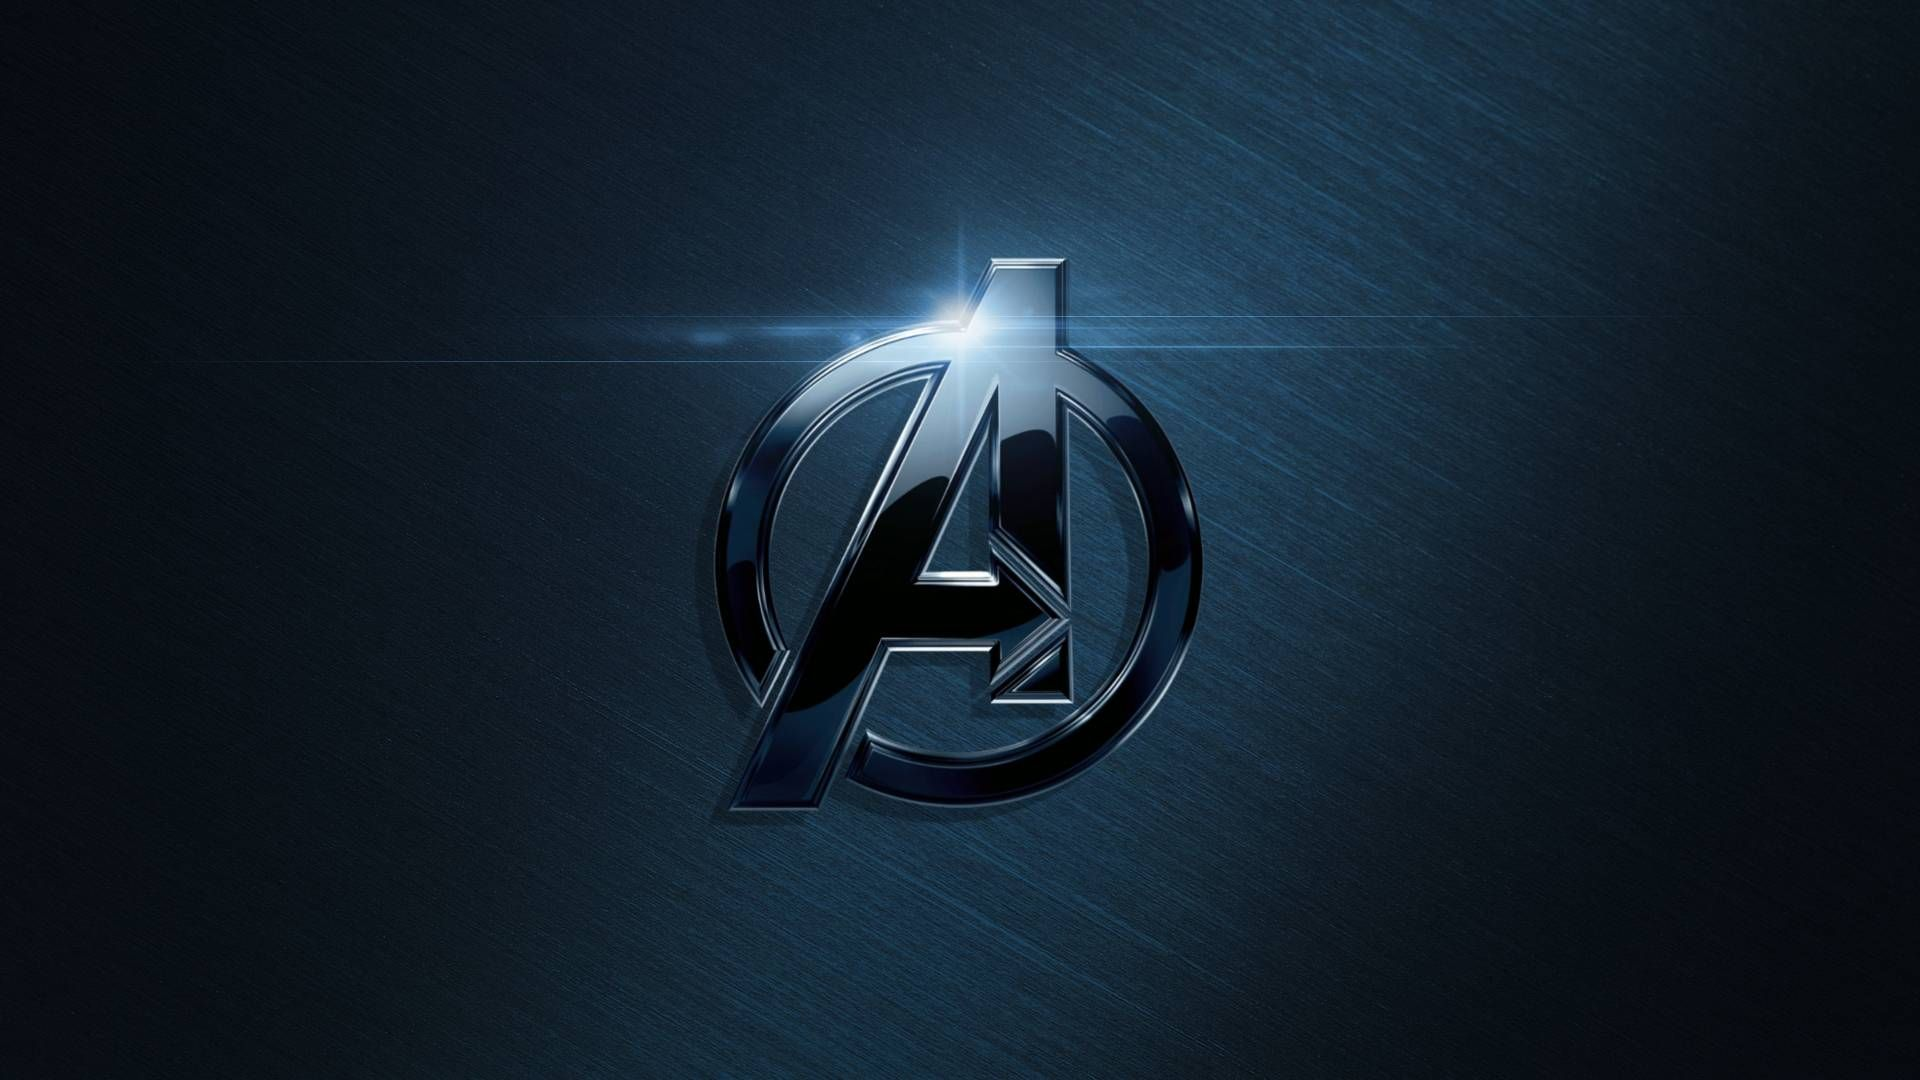 Mtb3esl Jpg 1920 1080 Logo Wallpaper Hd Avengers Logo Avengers Wallpaper